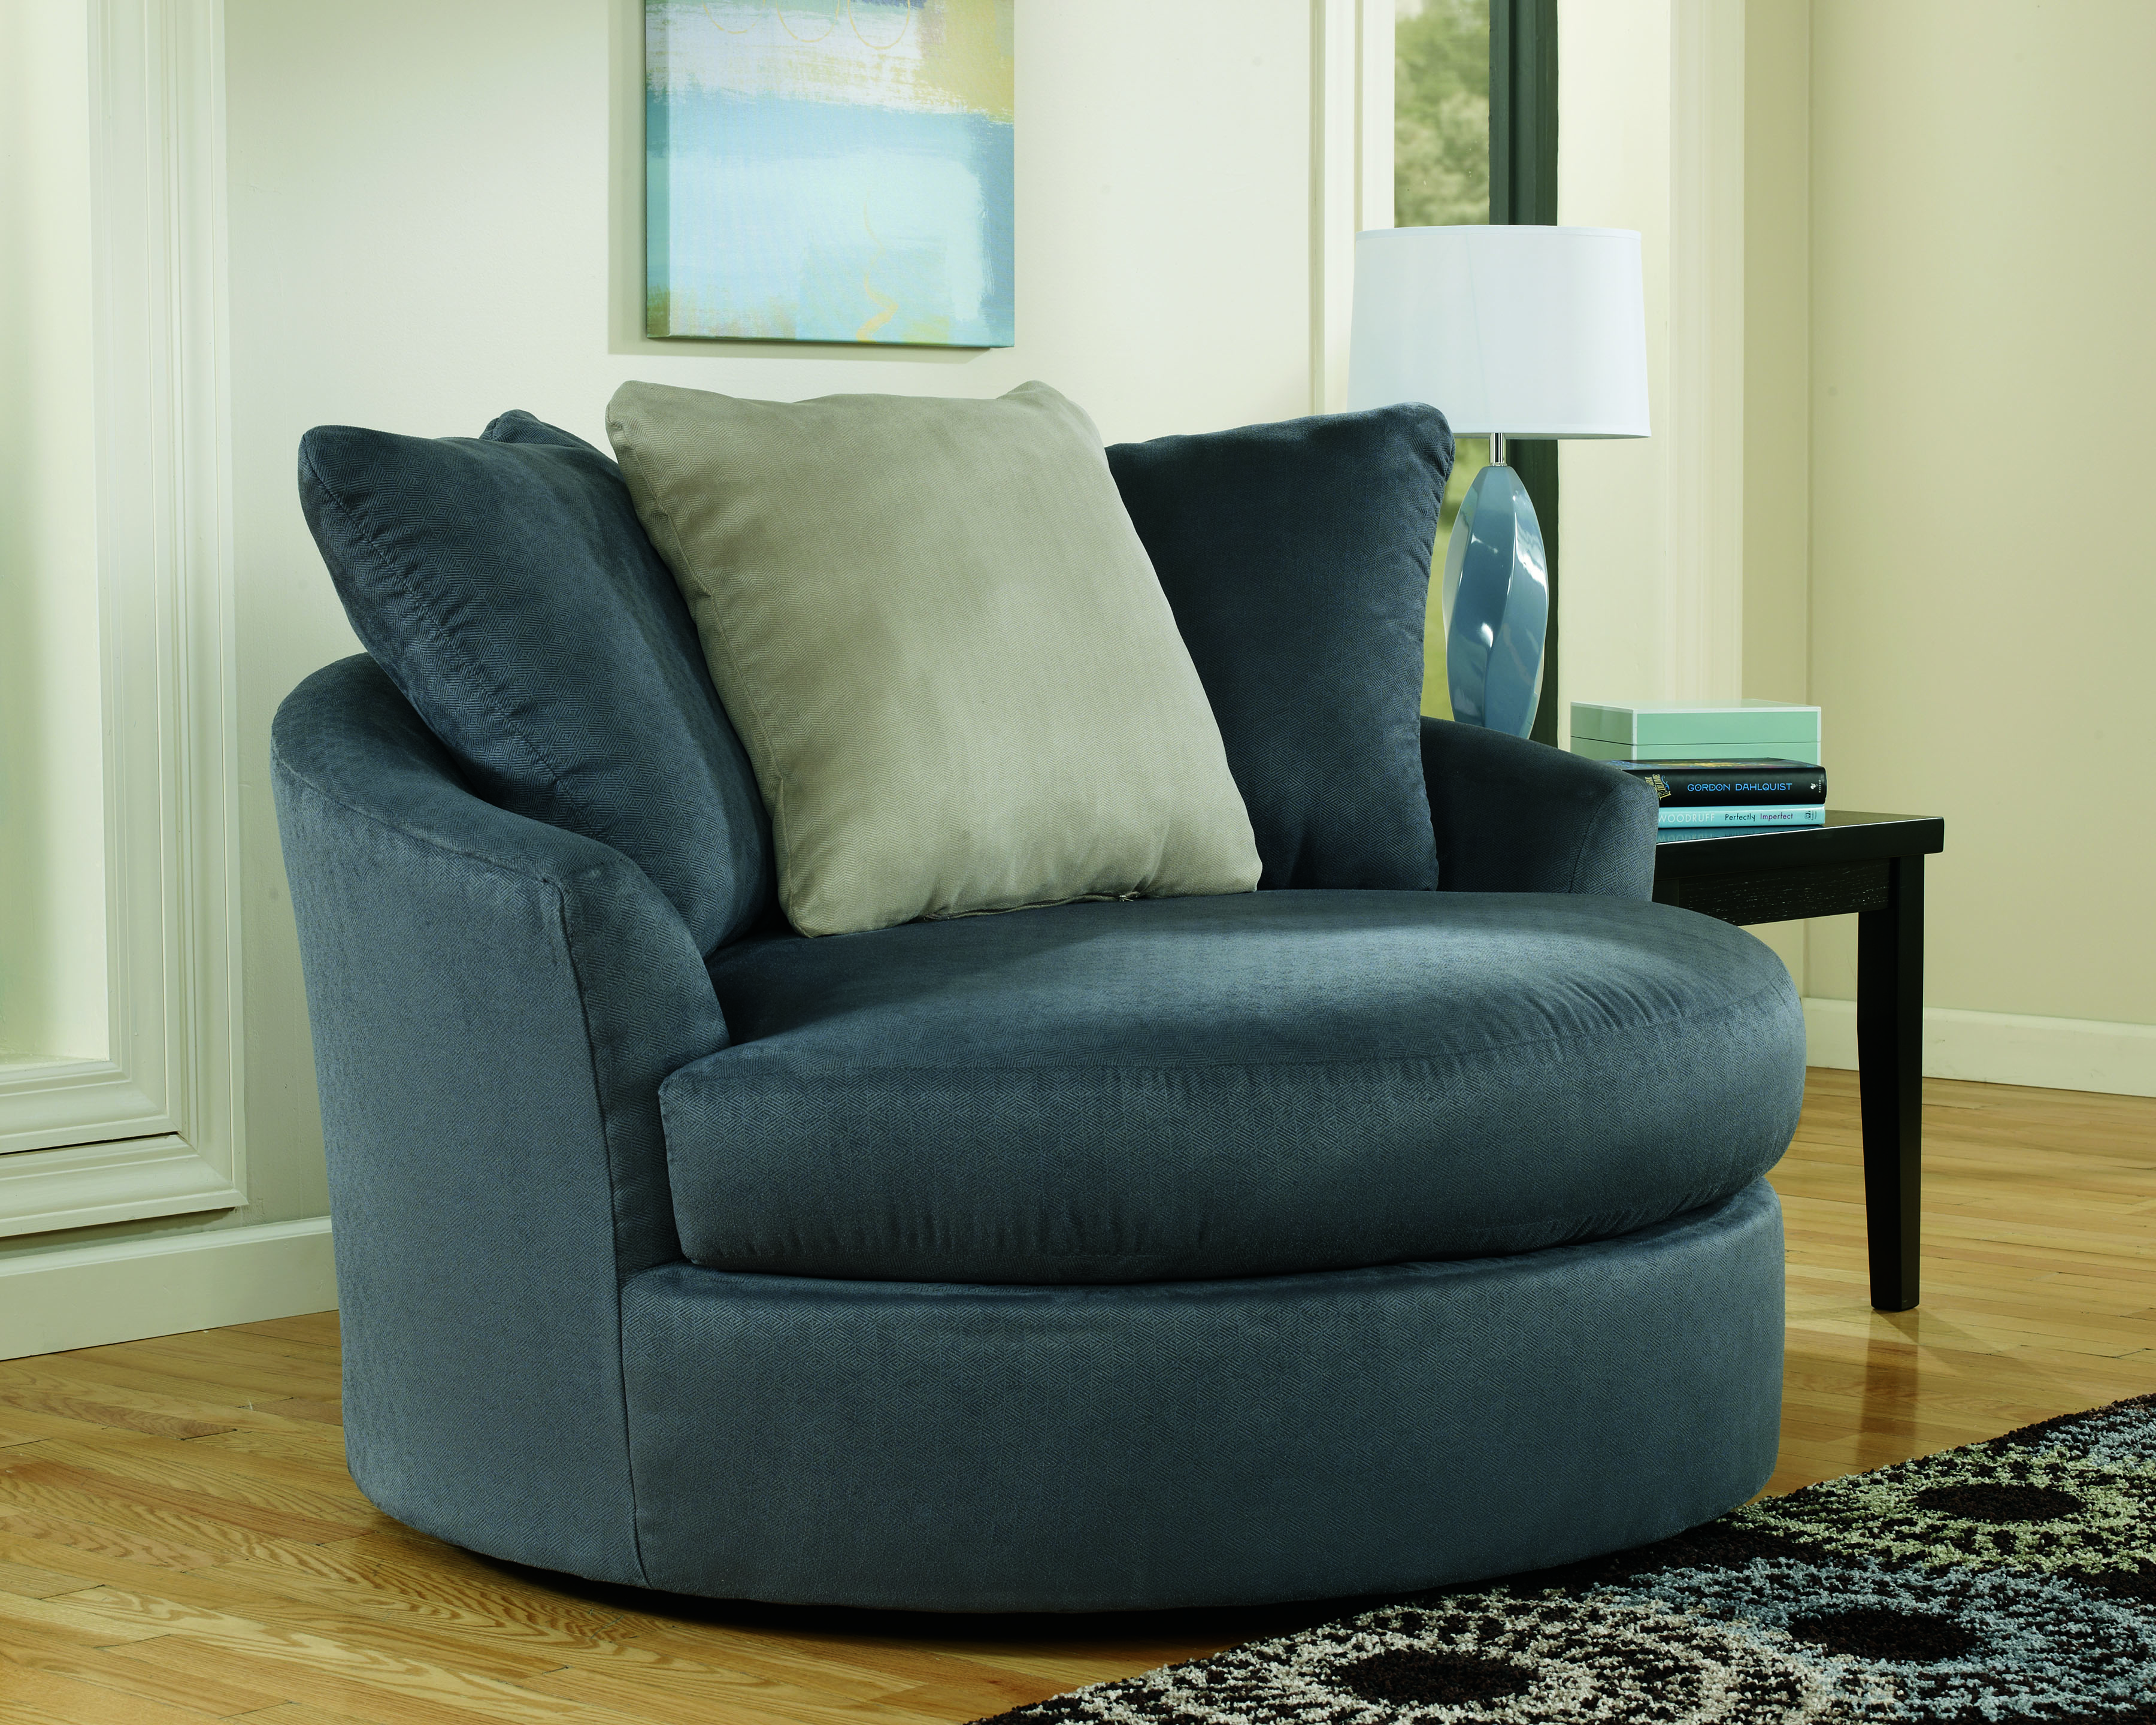 Design Ideas Fascinating Round Swivel Chair Living Room 31 Wtsenates